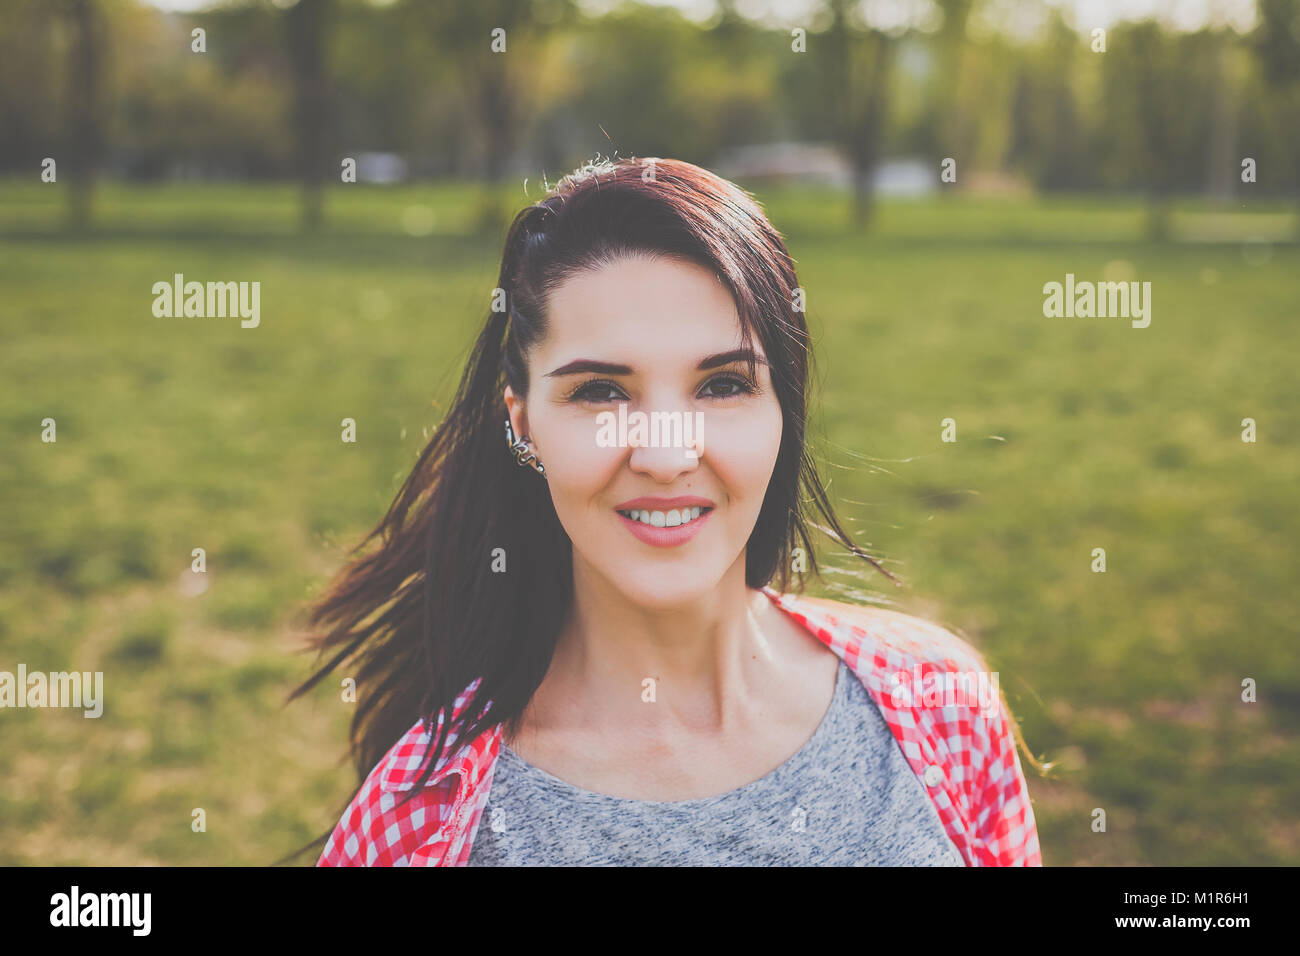 hipster girl smiling - Stock Image